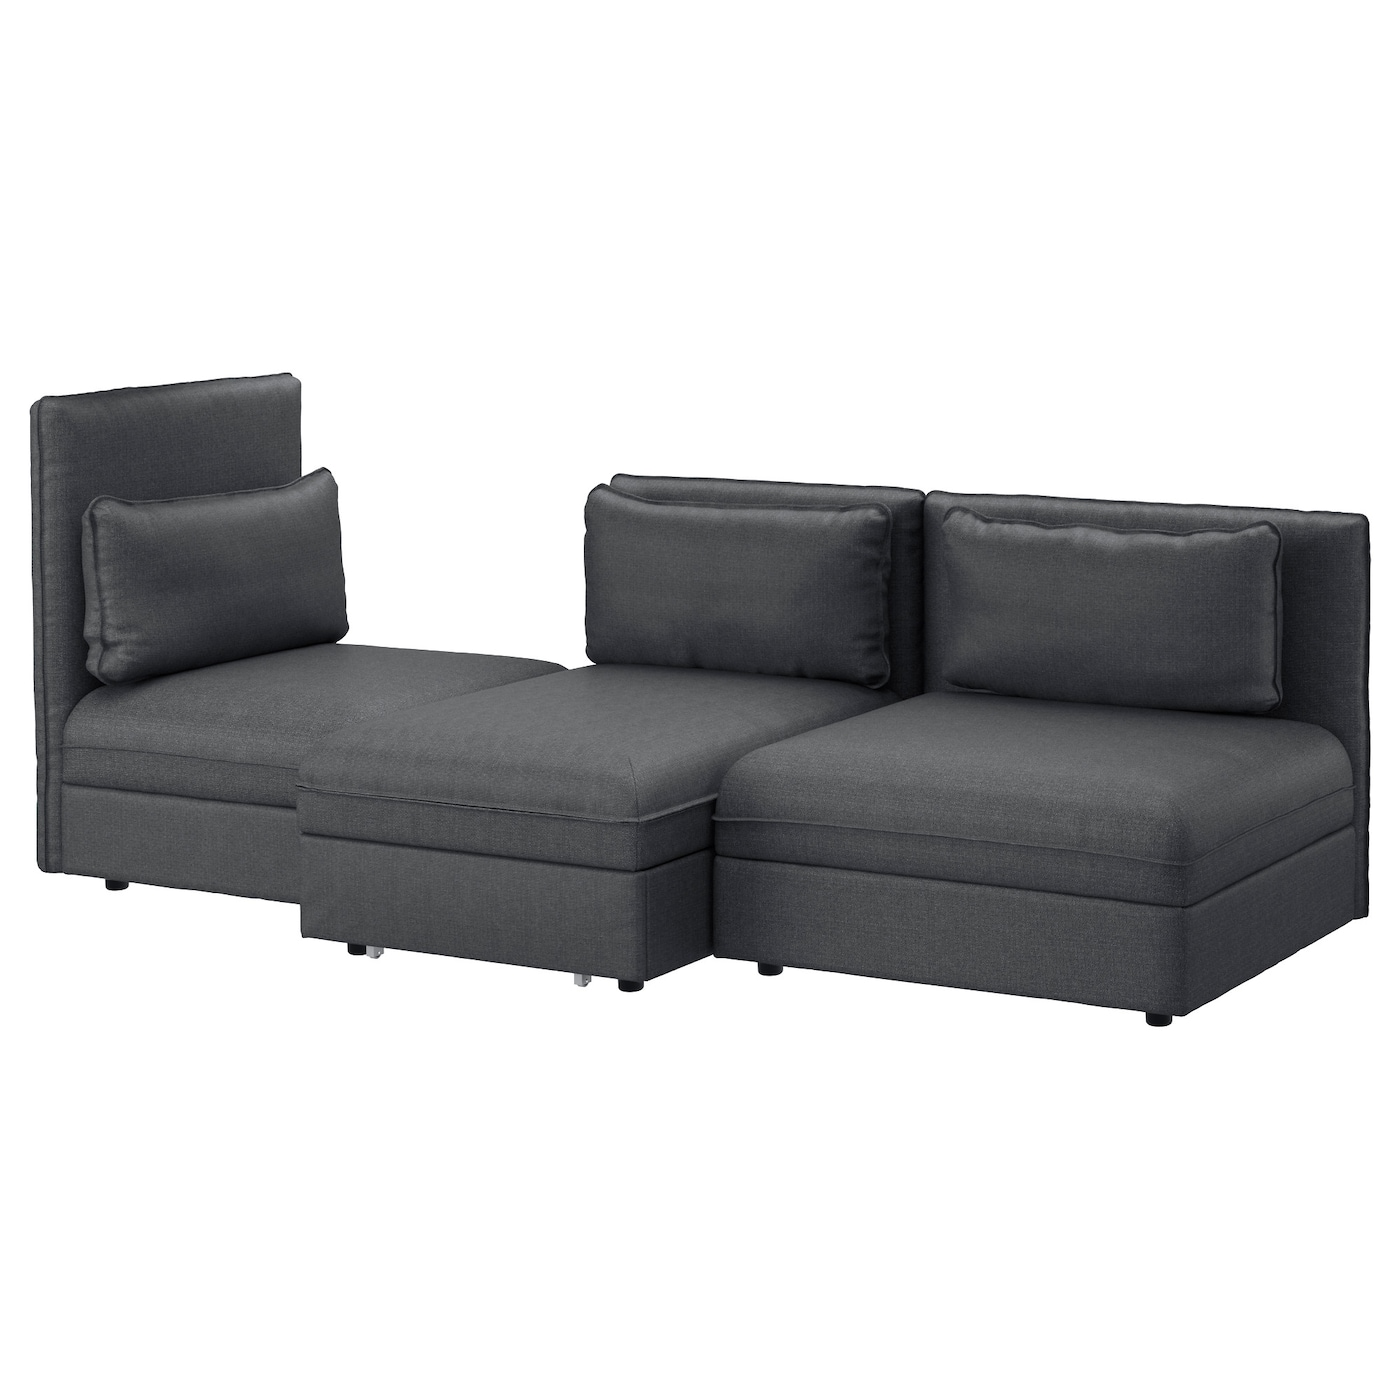 sofas armchairs ikea. Black Bedroom Furniture Sets. Home Design Ideas